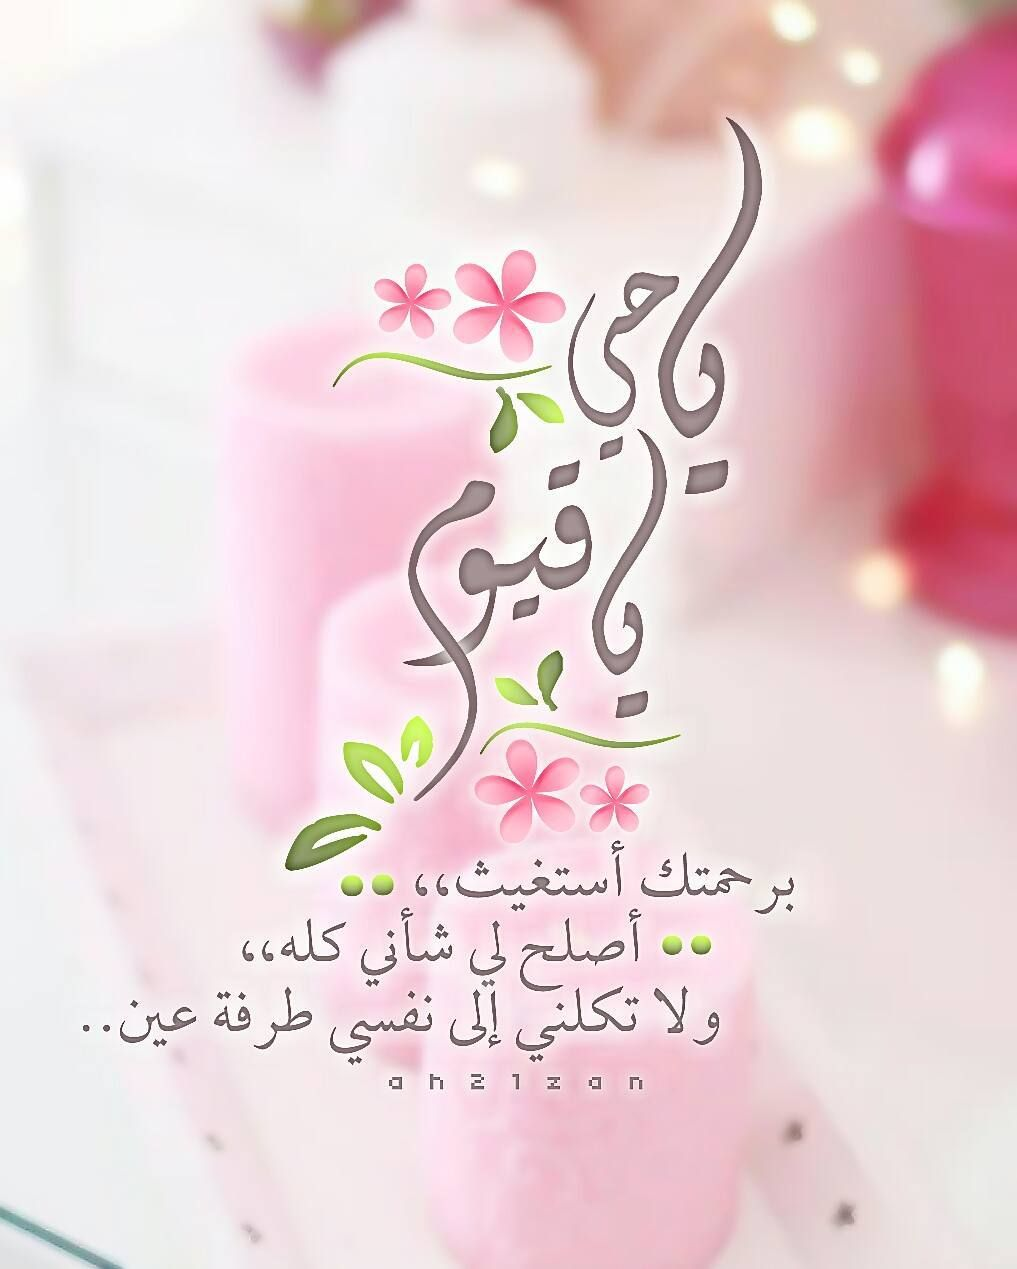 اذ ڪر و ا ال ل هـ S Instagram Profile Post يا حي يا قيوم برحمتك استغ Good Morning Arabic Wedding Flower Pictures Beautiful Arabic Words